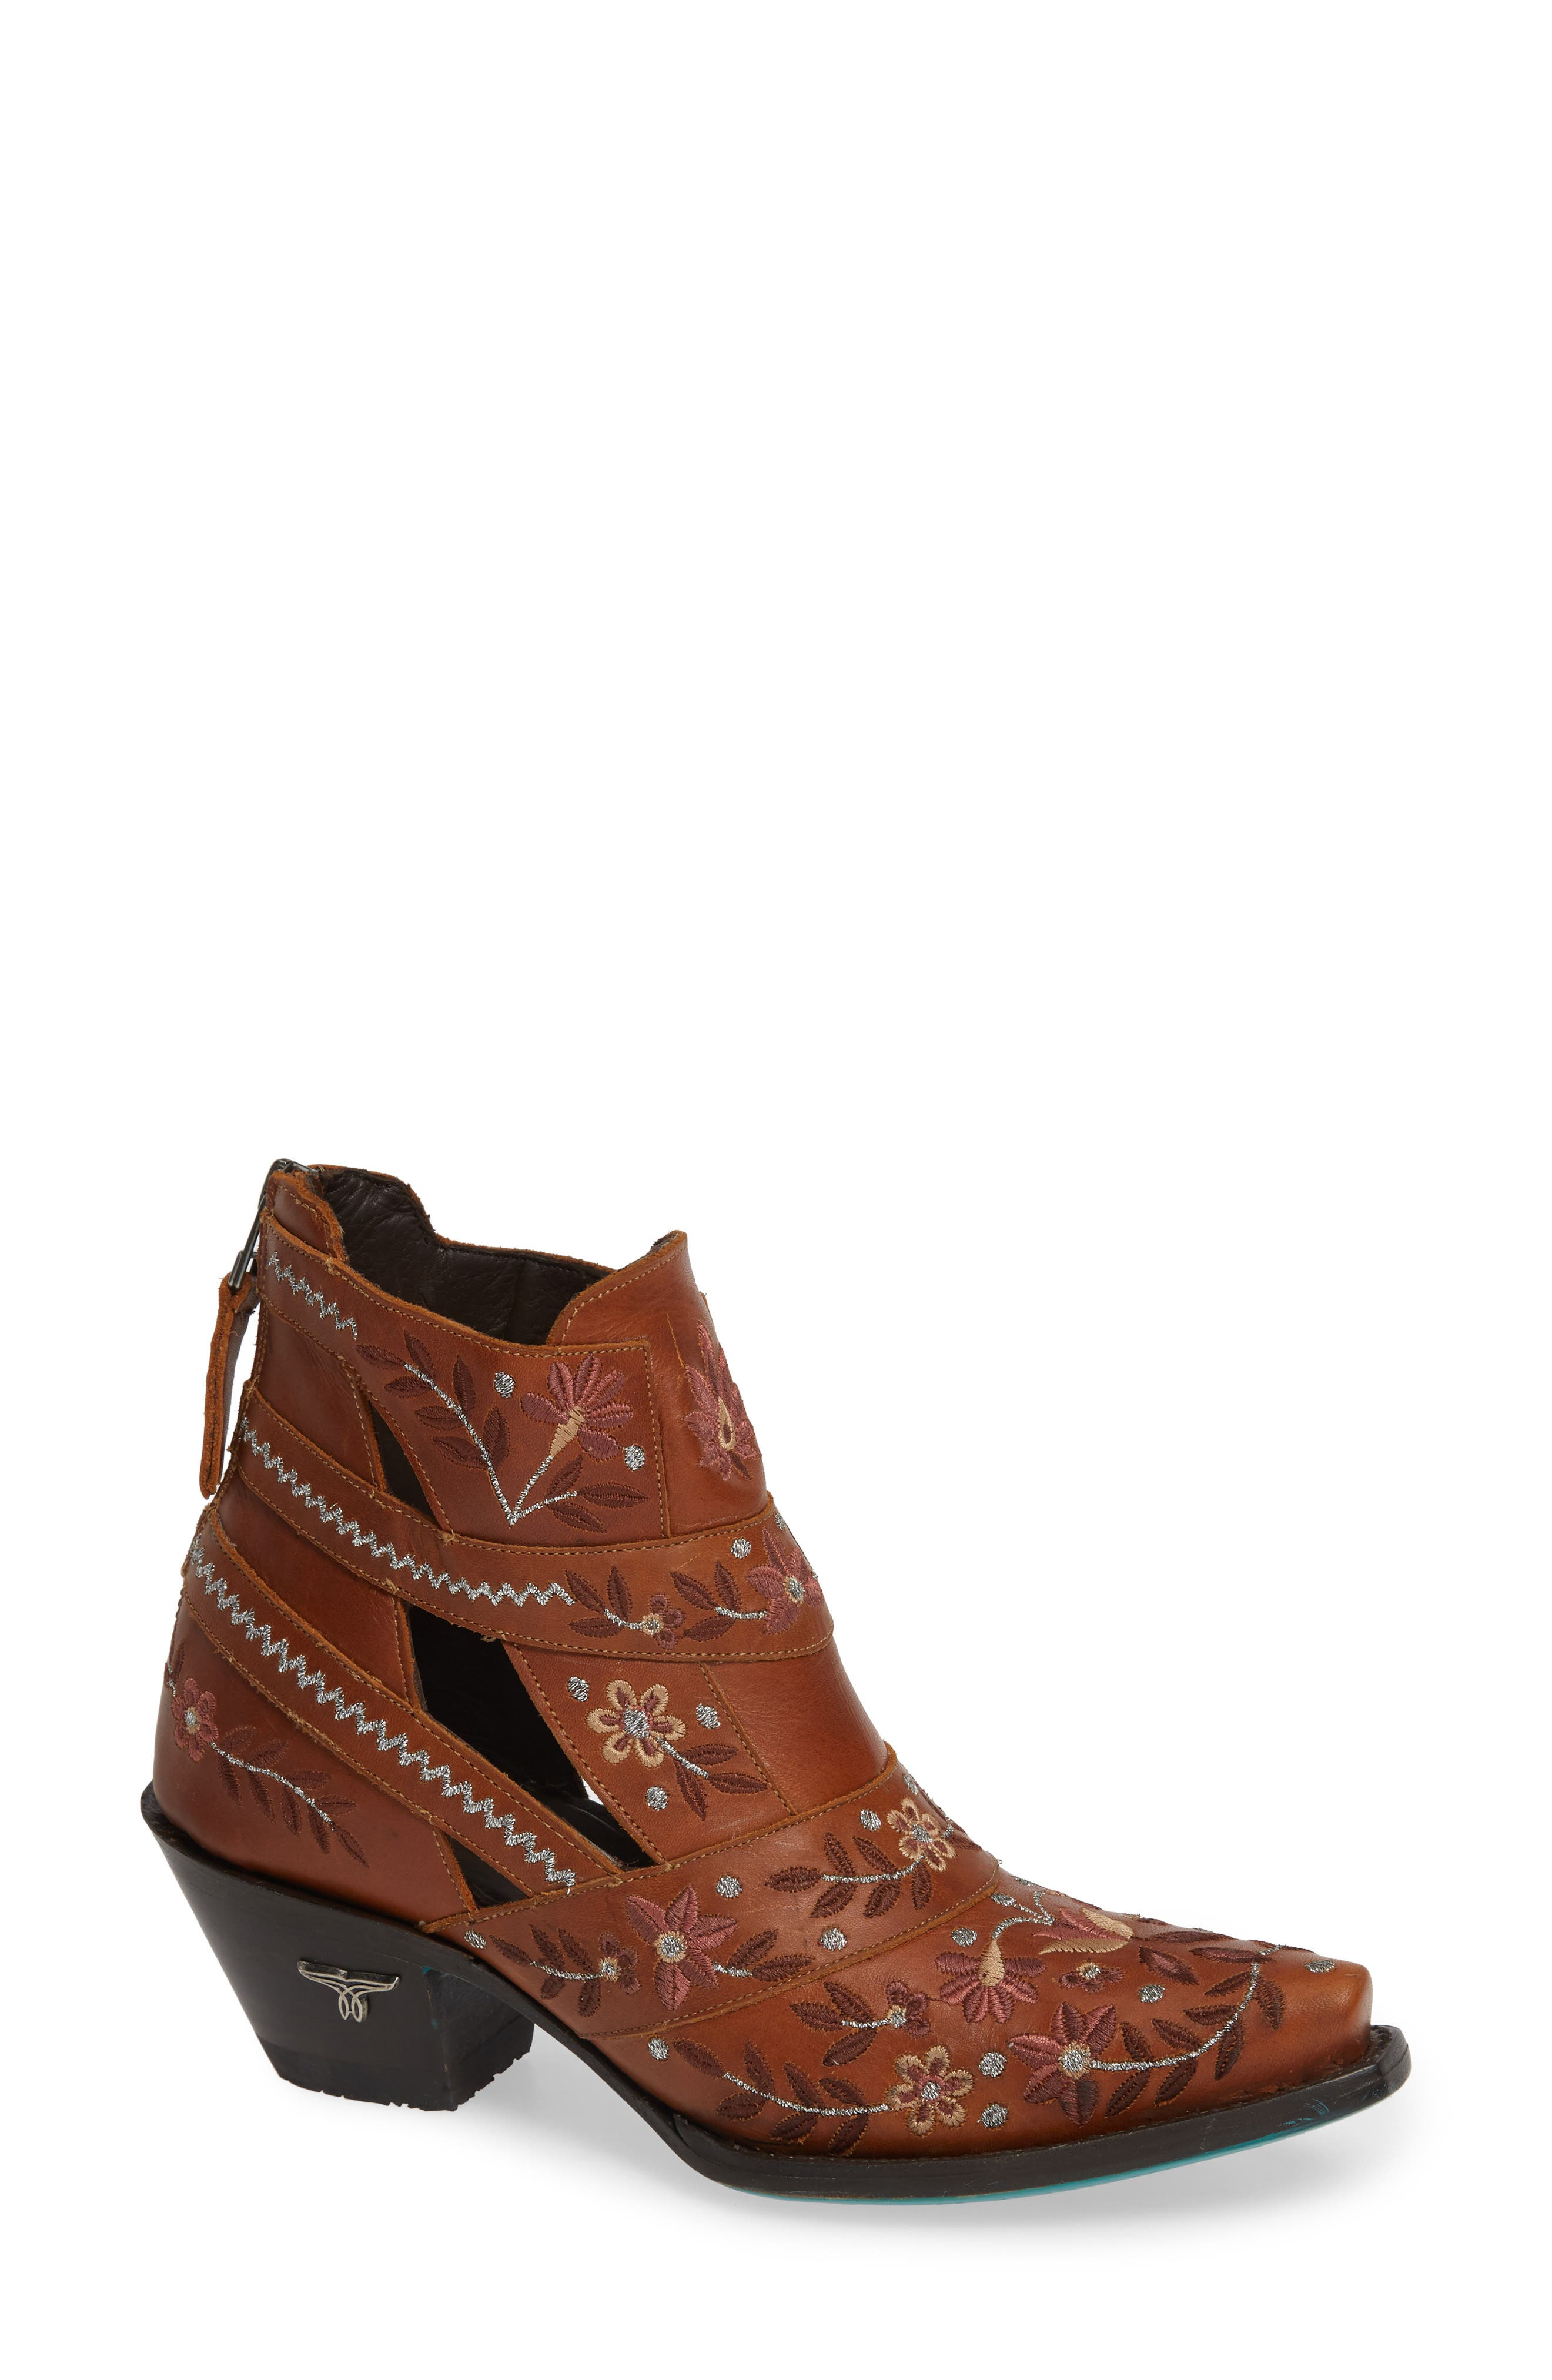 Lane Boots Camilla Embroidered Bootie, Brown